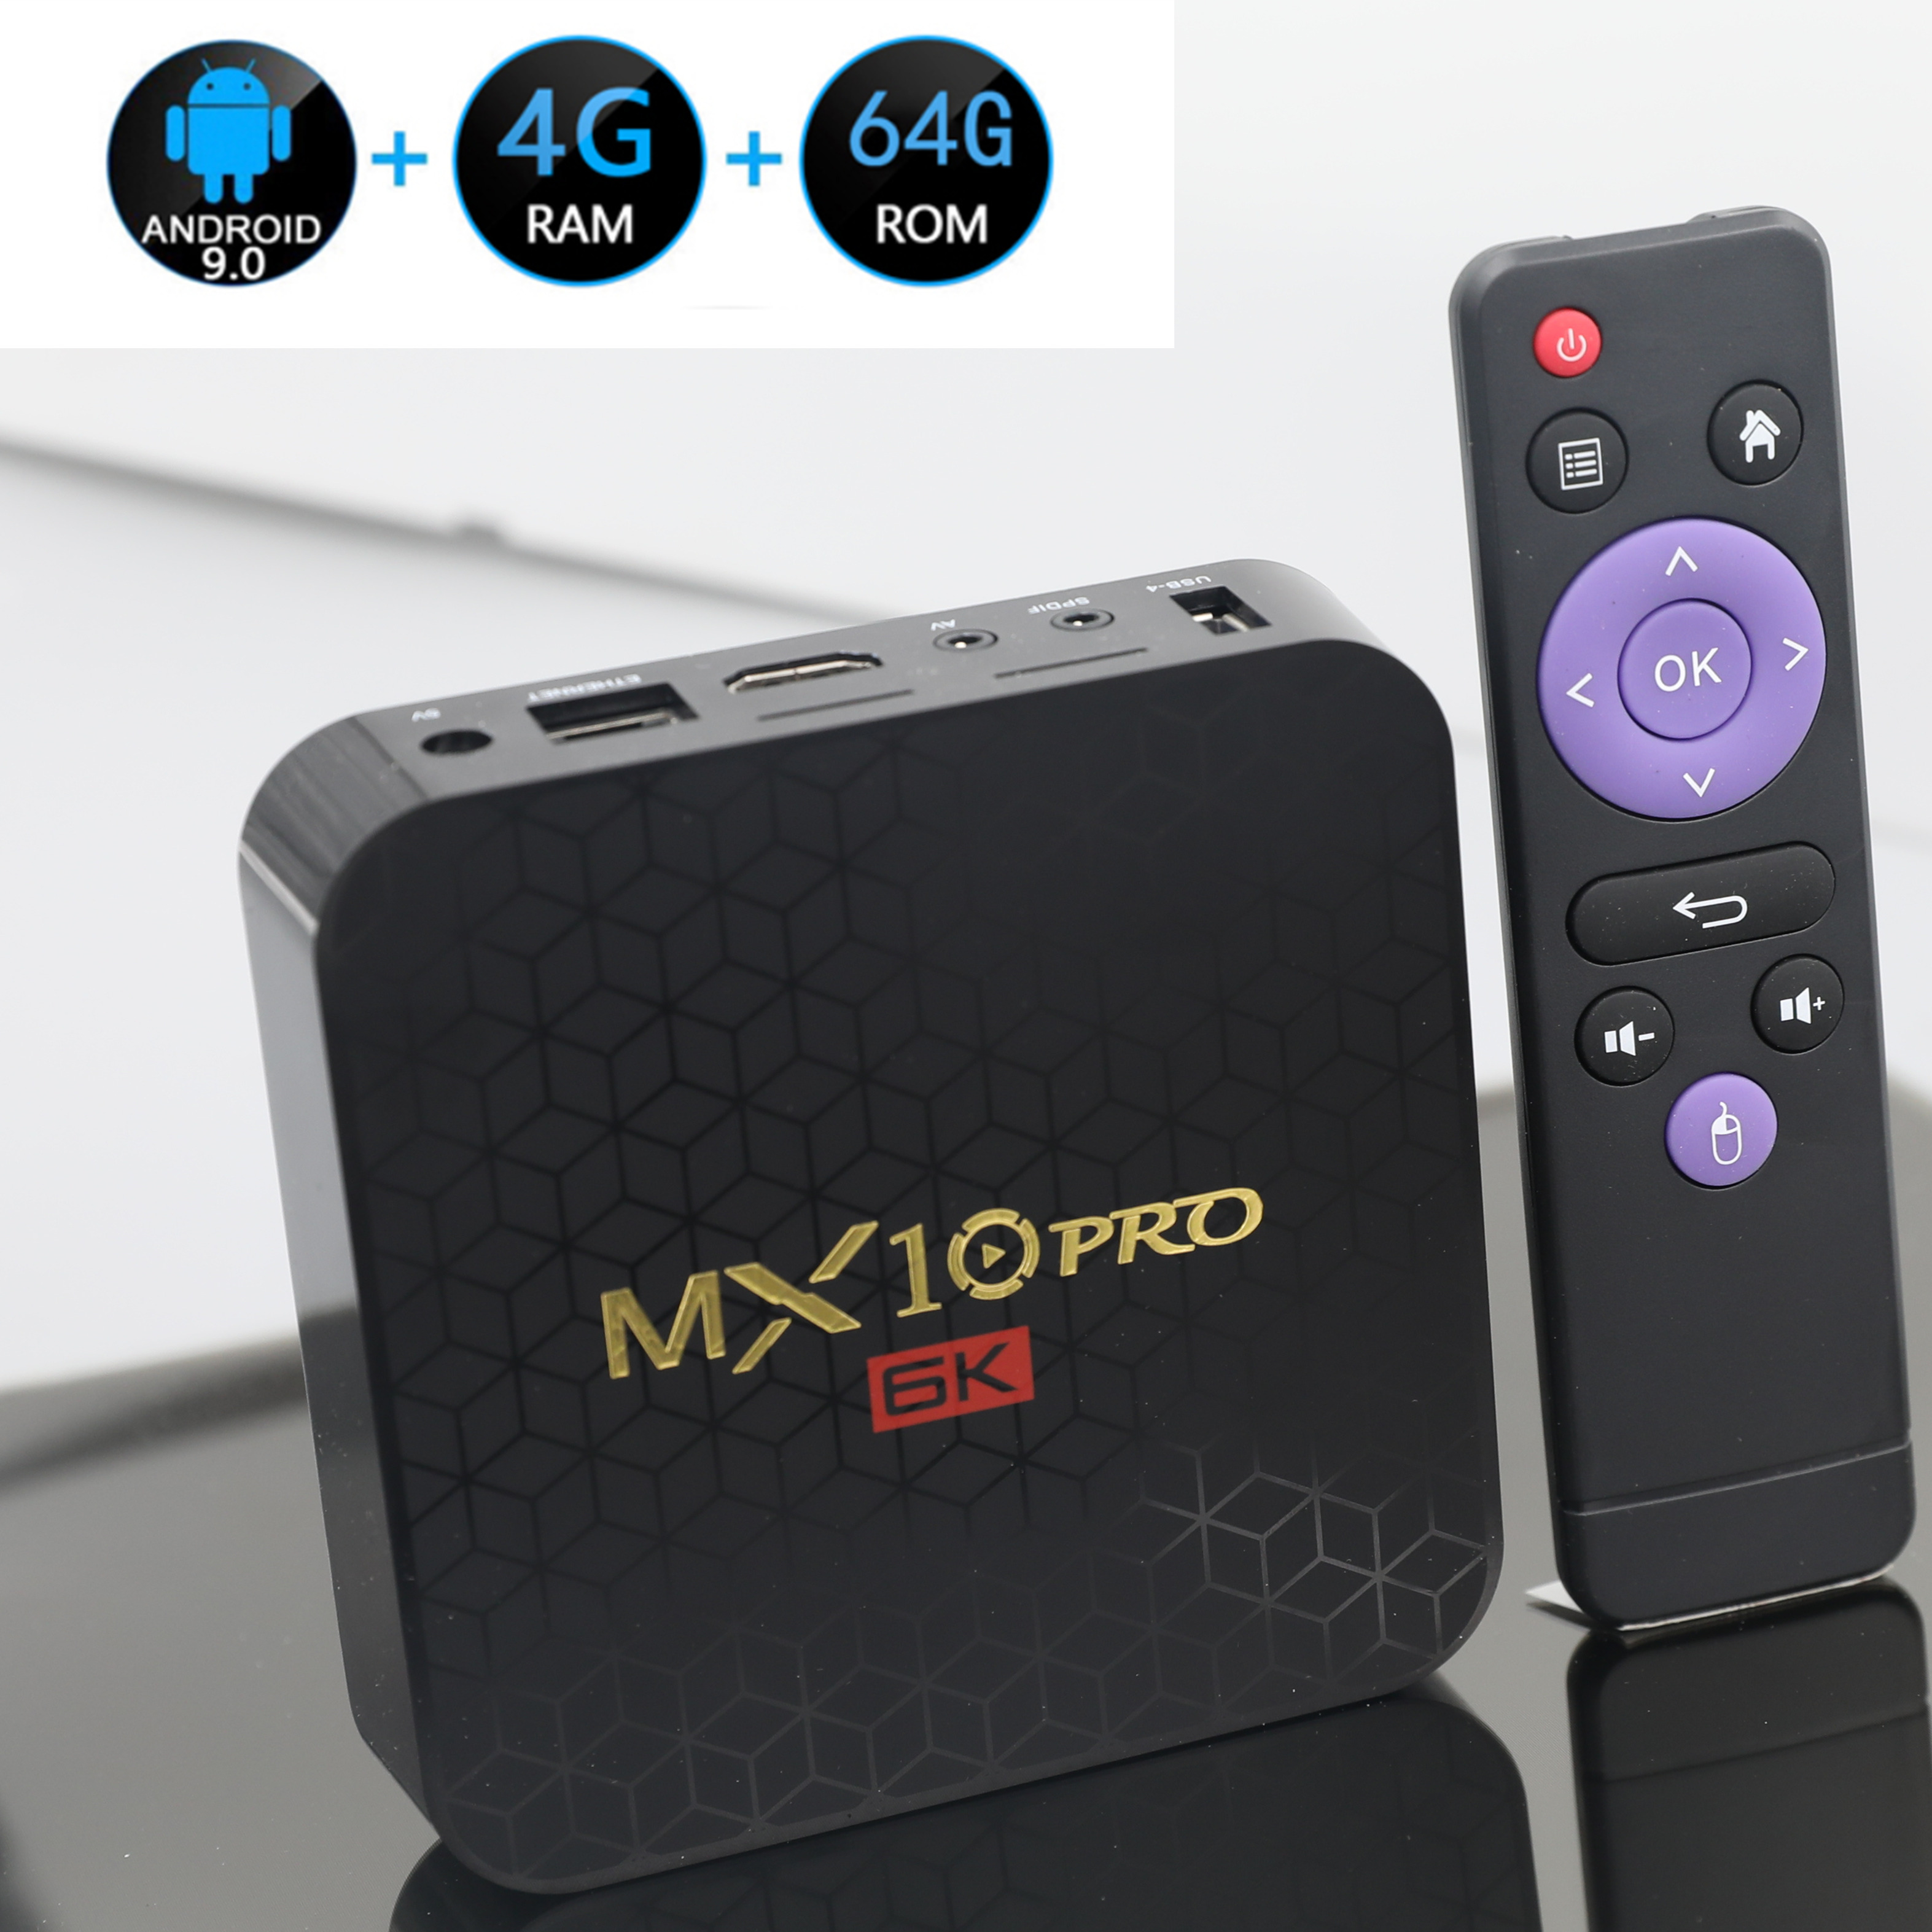 6K TV Box MX10 Pro Android 9.0 Allwinner H6 Quad Core 4GB 32GB 64GB 2.4G WiFi USB3.0 Support 6K*4K H.265 Smart Media Player